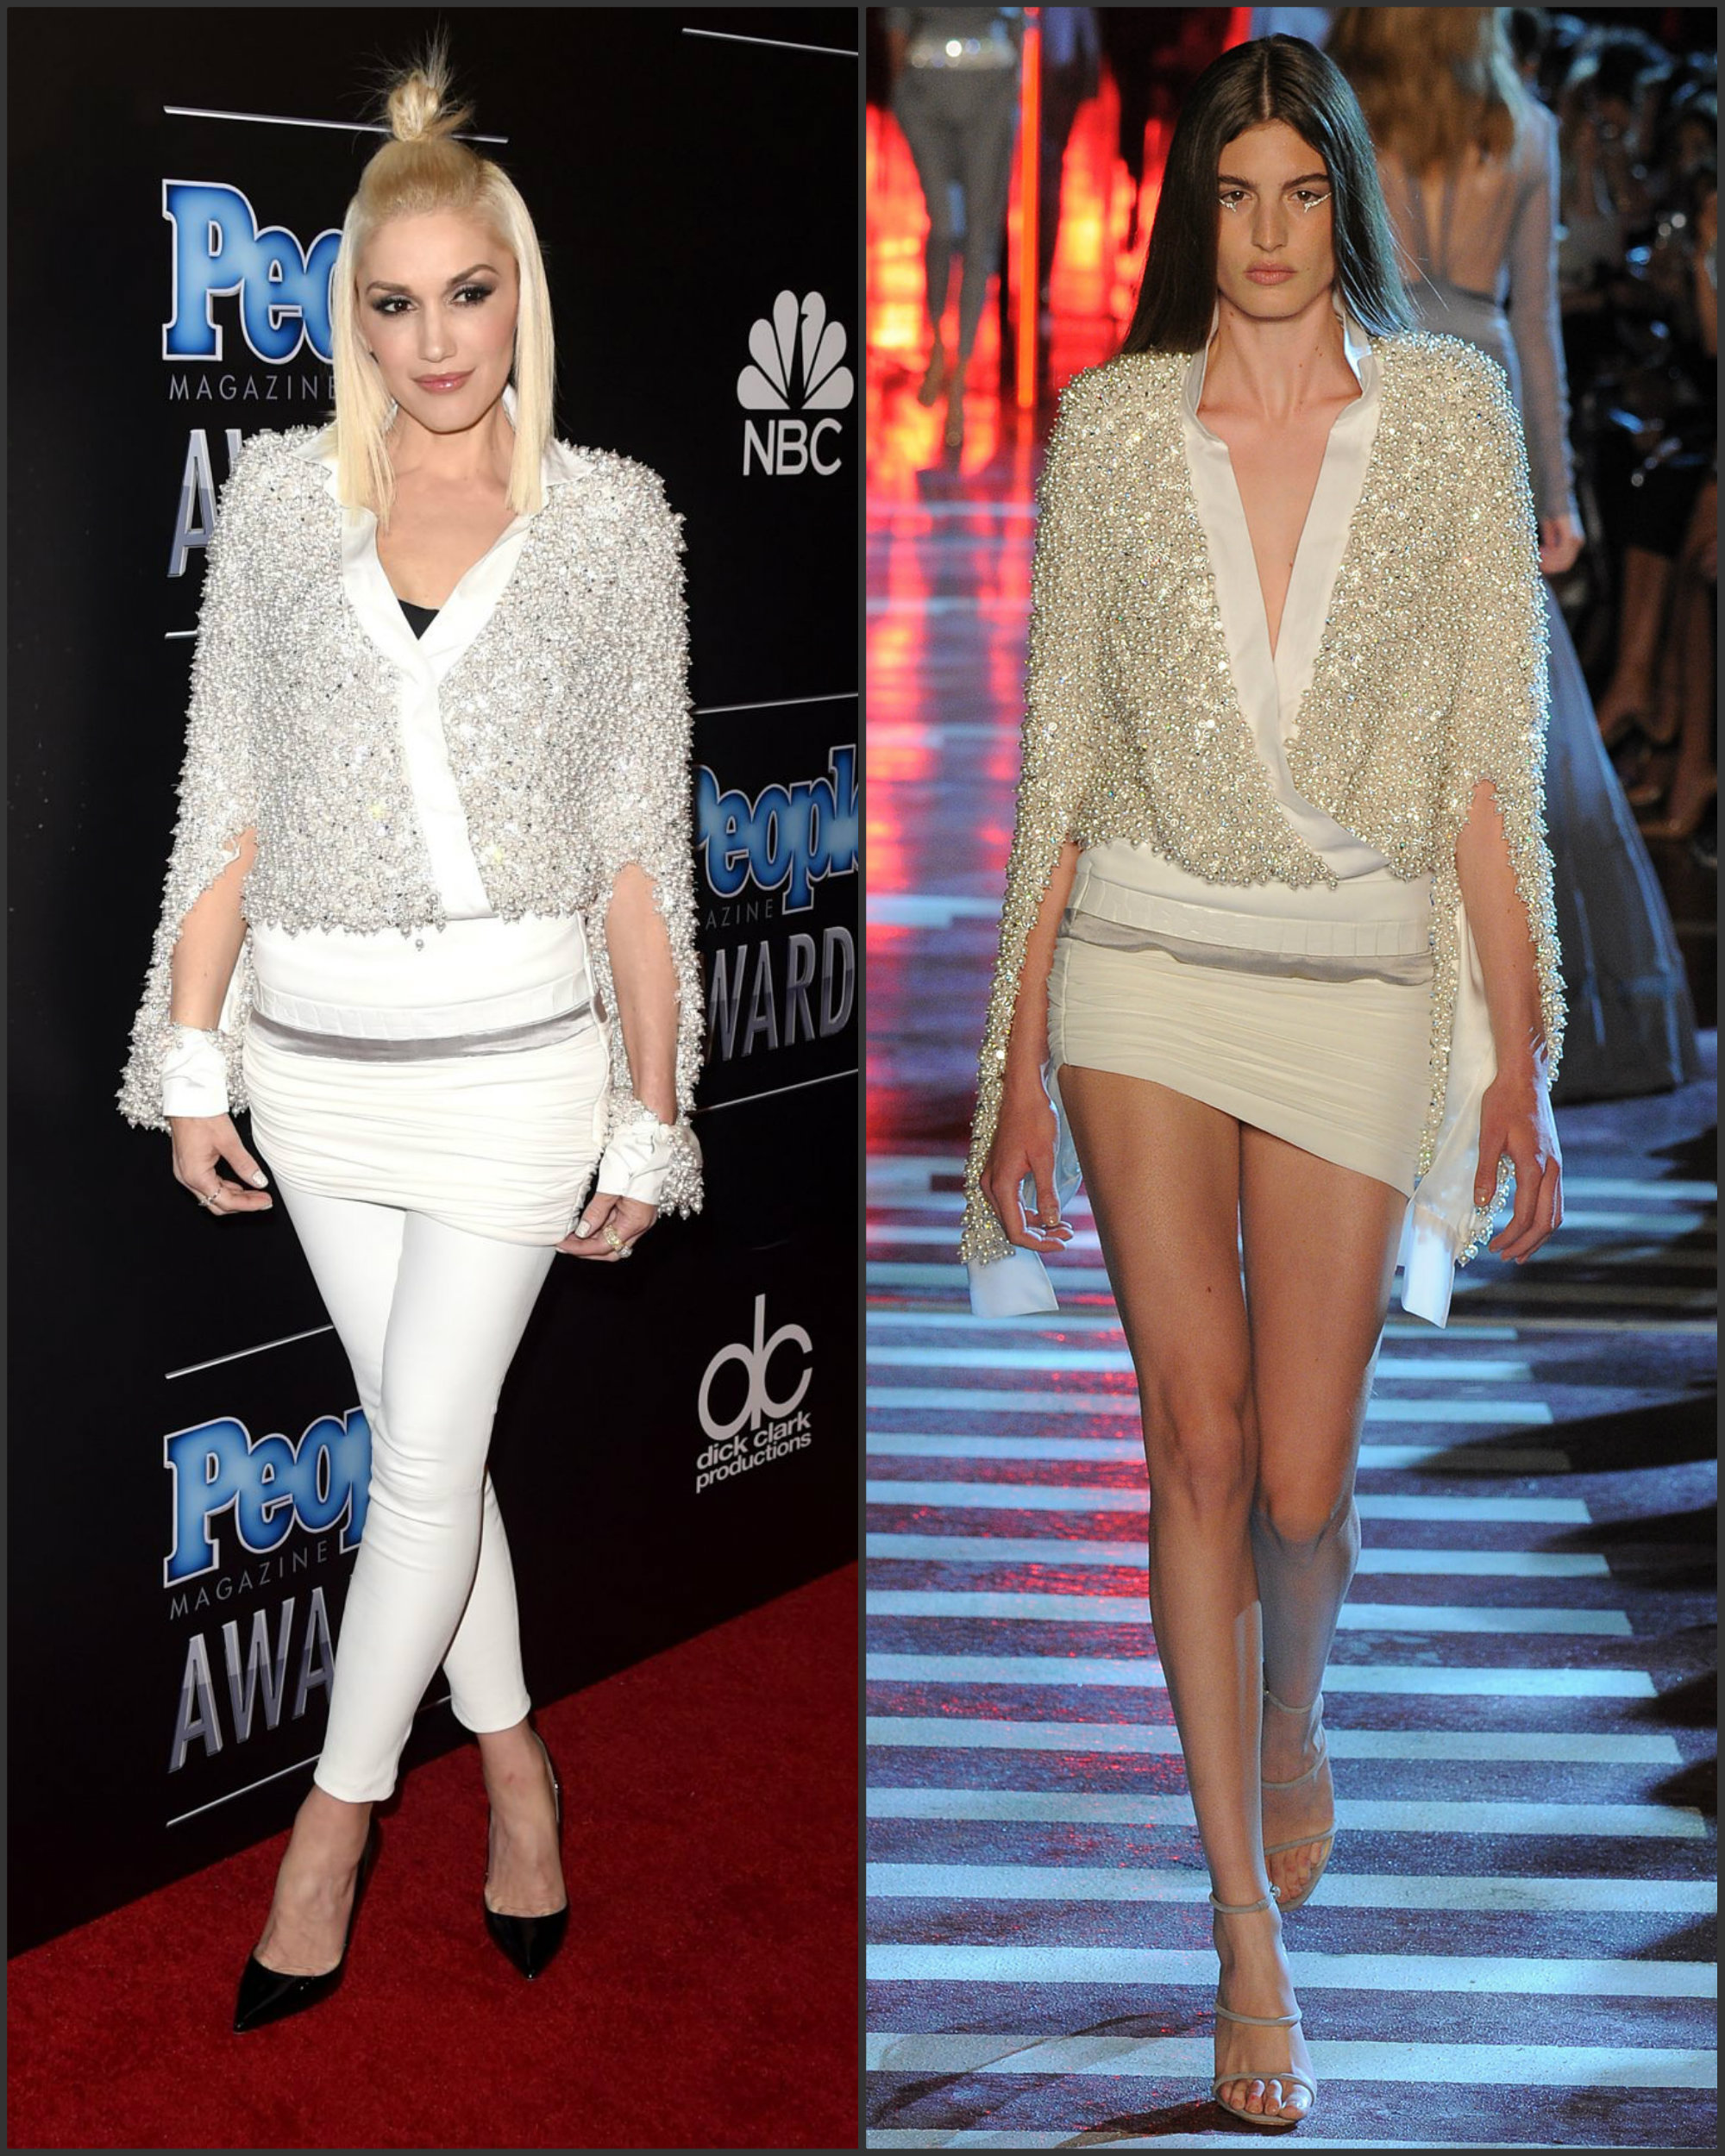 Gwen-Stafani-wears-Alexandre-Vauthier-Couture-The-People-Magazine-Awards